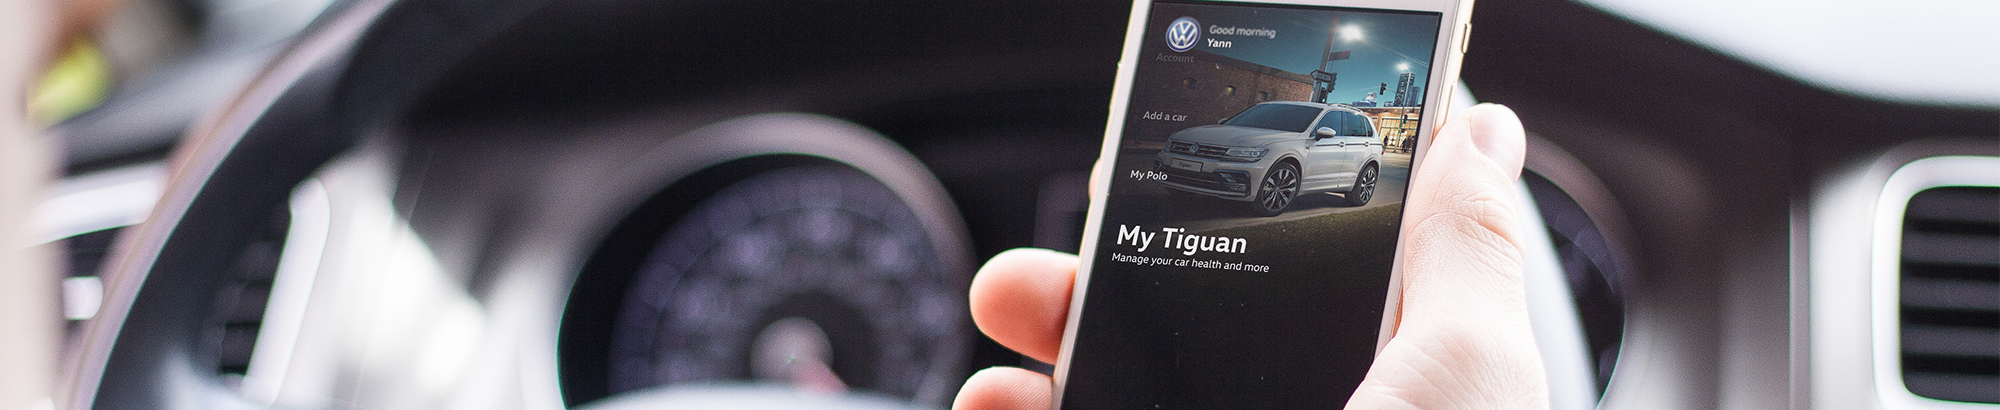 Someone using mobile phone with the My Tiguan screen showing on the app